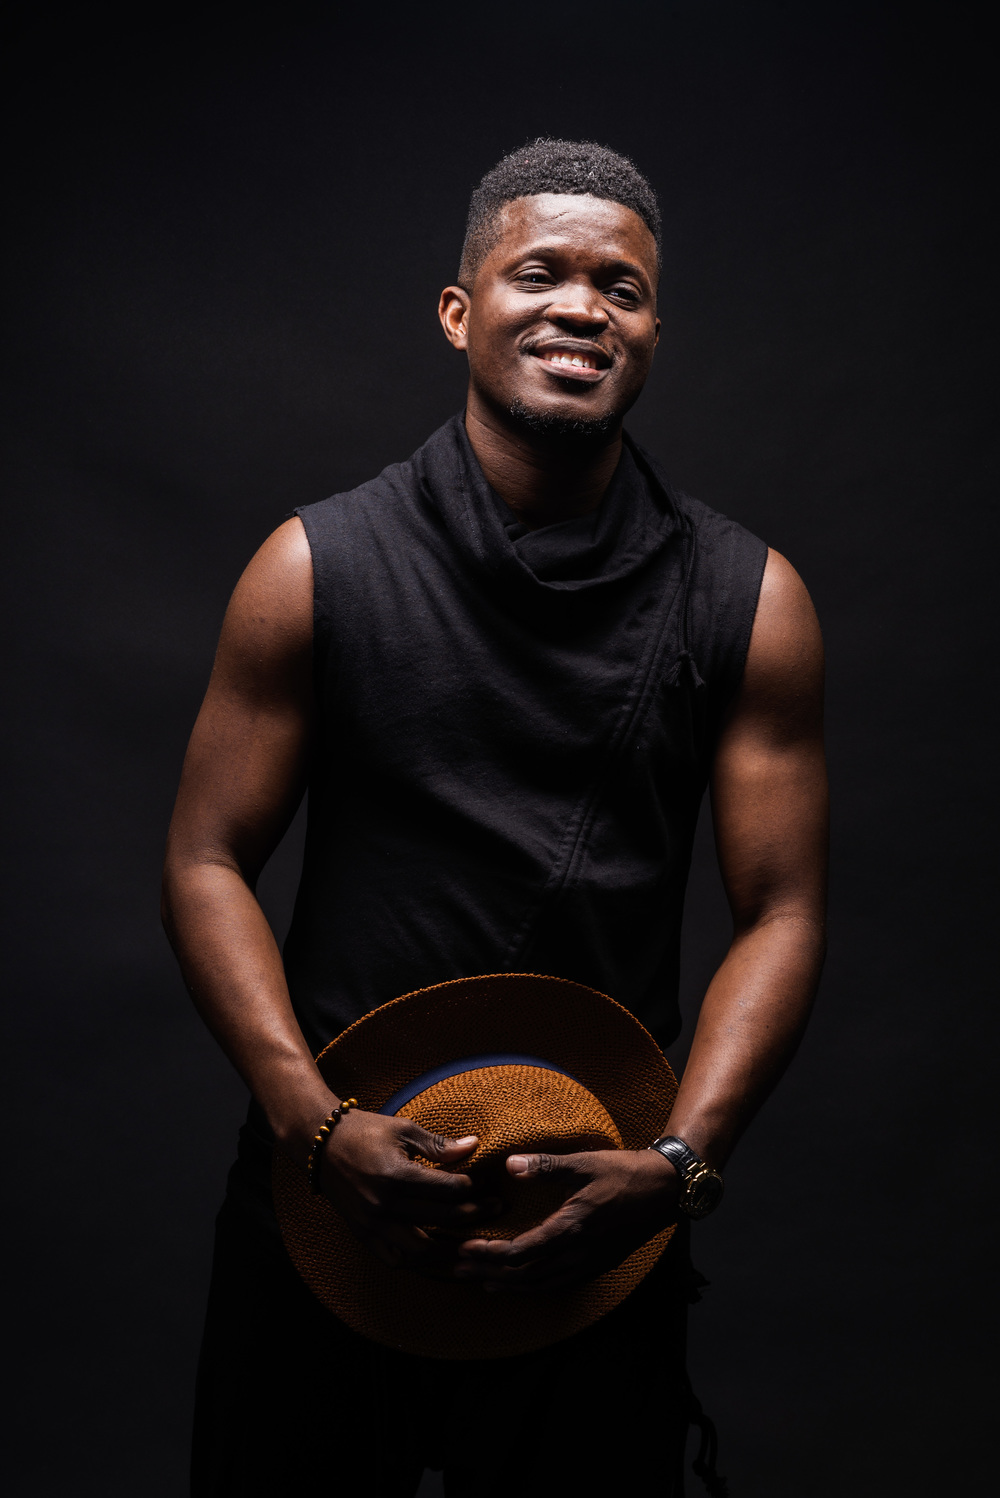 Laolu Senbanjo photo by Ima Mfon